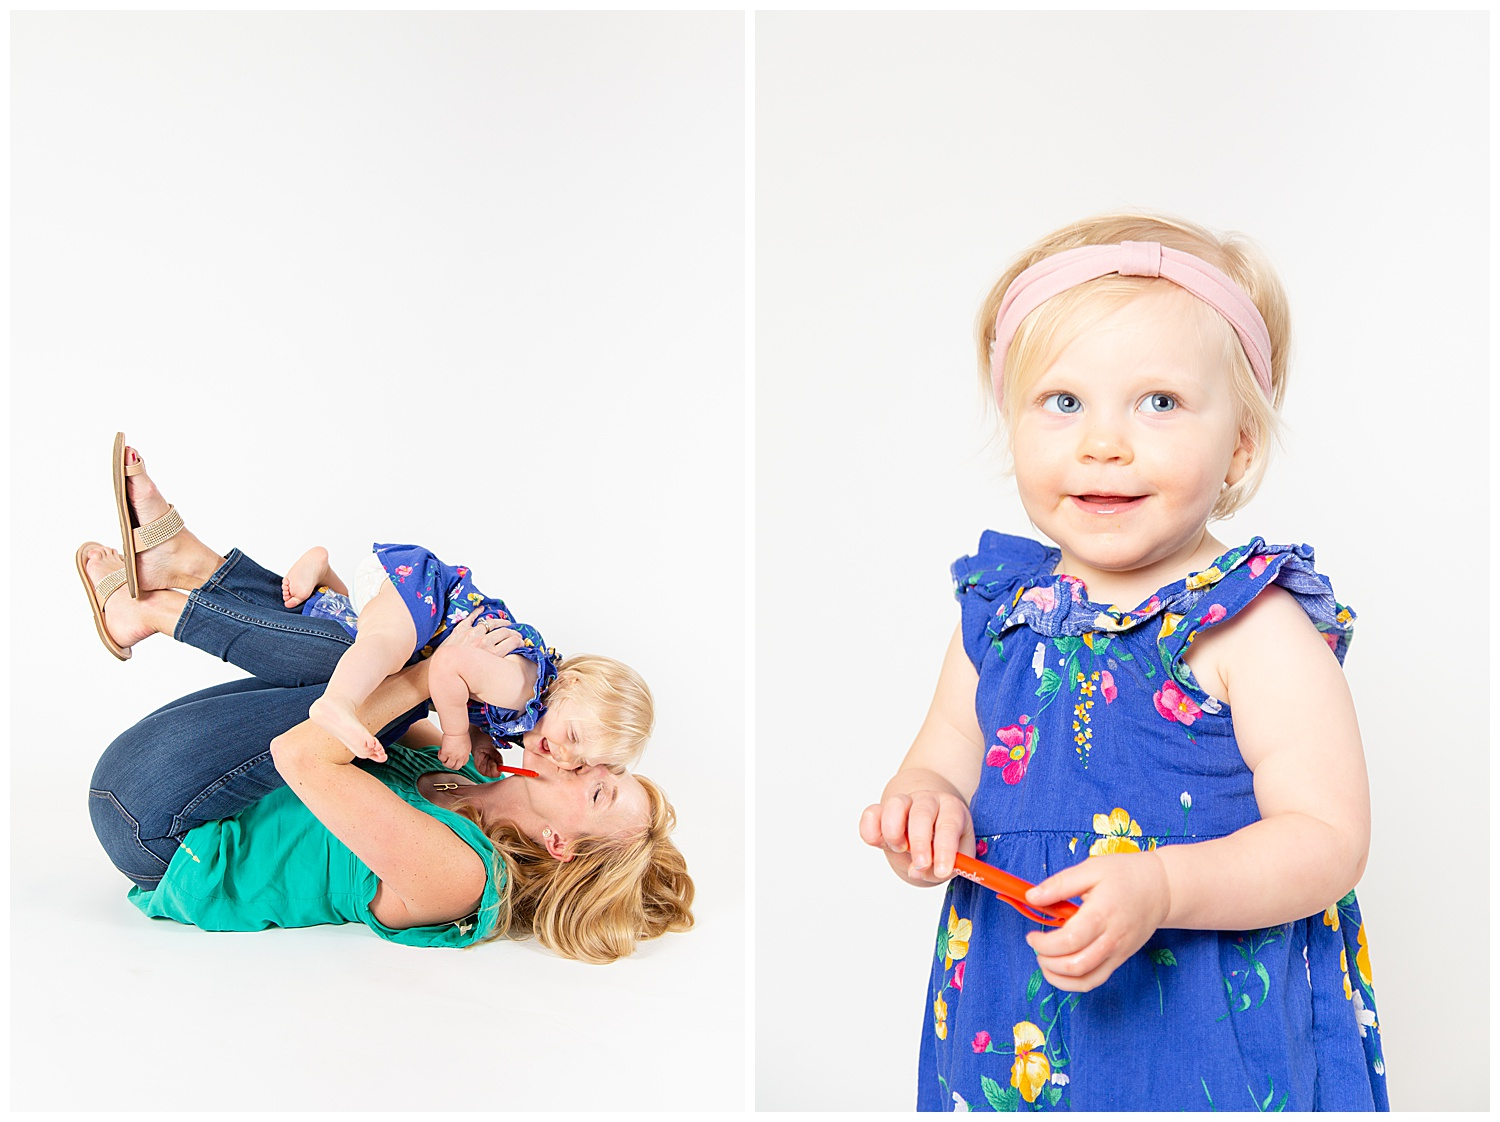 emily-belson-photography-family-session-01.jpg